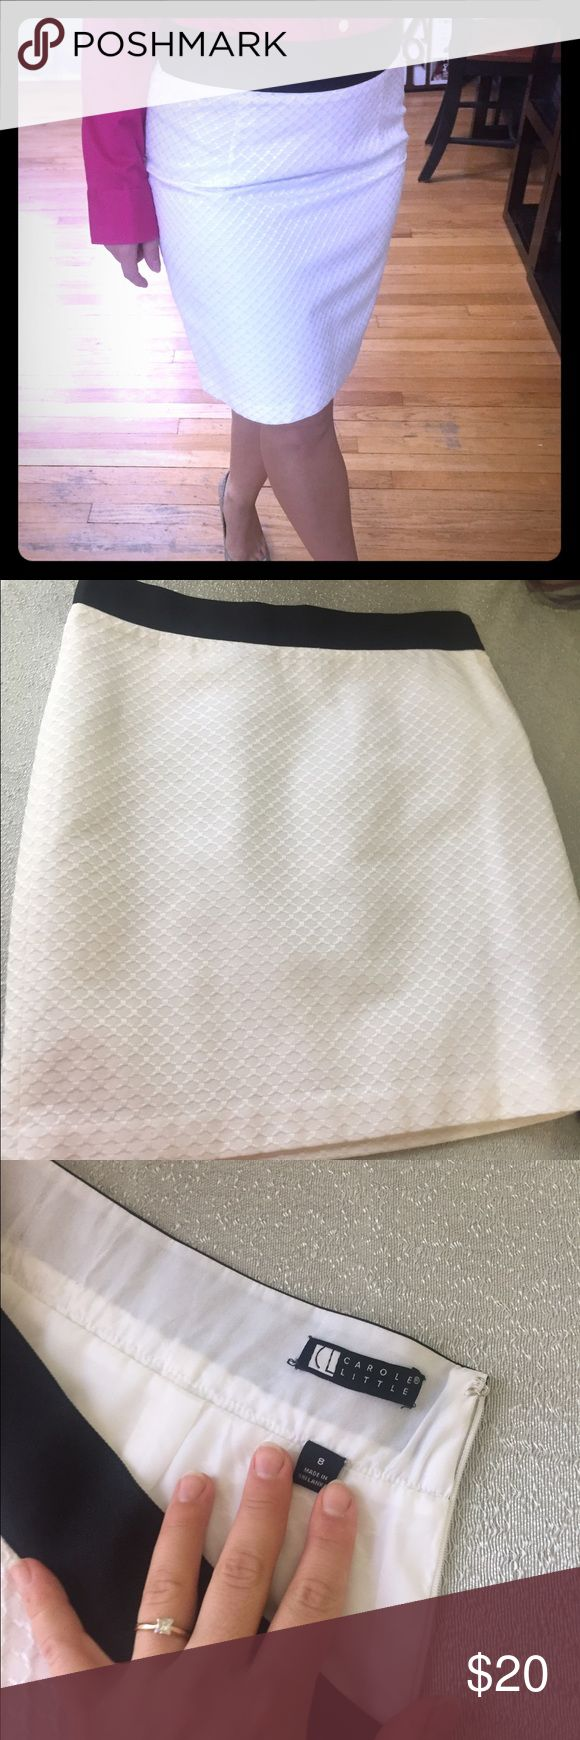 White textured mid skirt w/ black waist trim Textured white skirt, double layer with zipper on the side, size 8, gently used great condition, black waist trim, knee length, can be worn for business or casual. Carole Little Skirts Midi